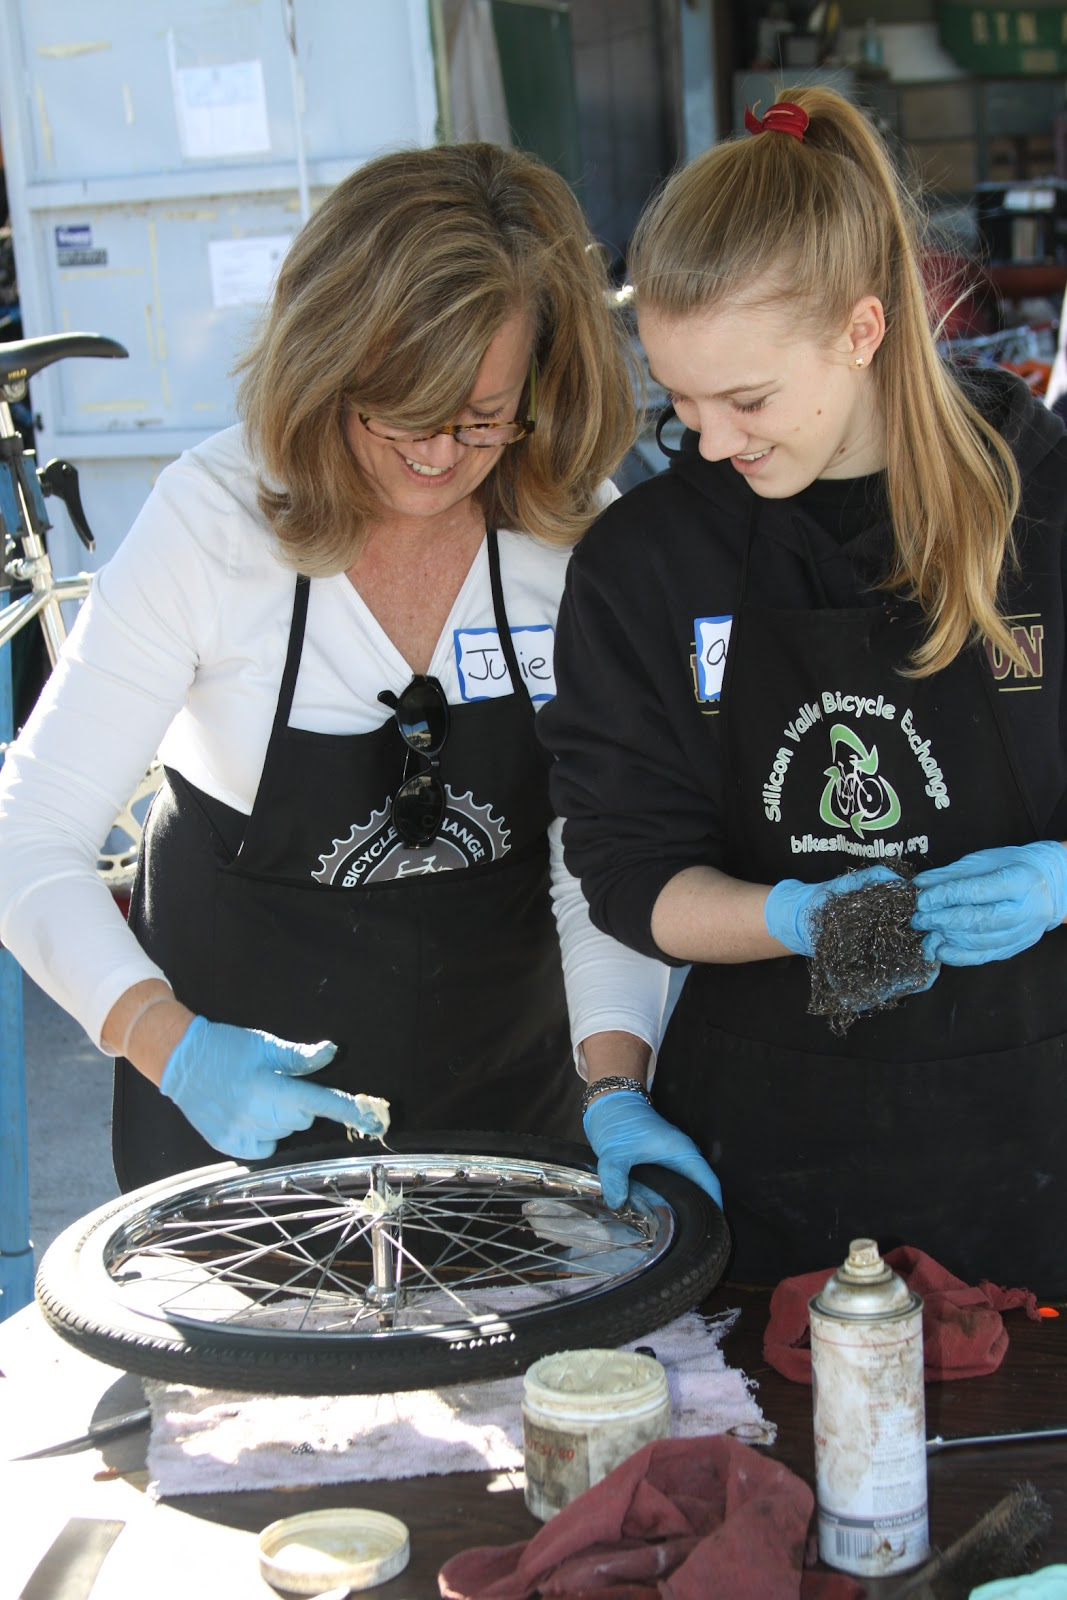 Julie greases the front hub of a donated bicycle, while Alaina cleans the bearings